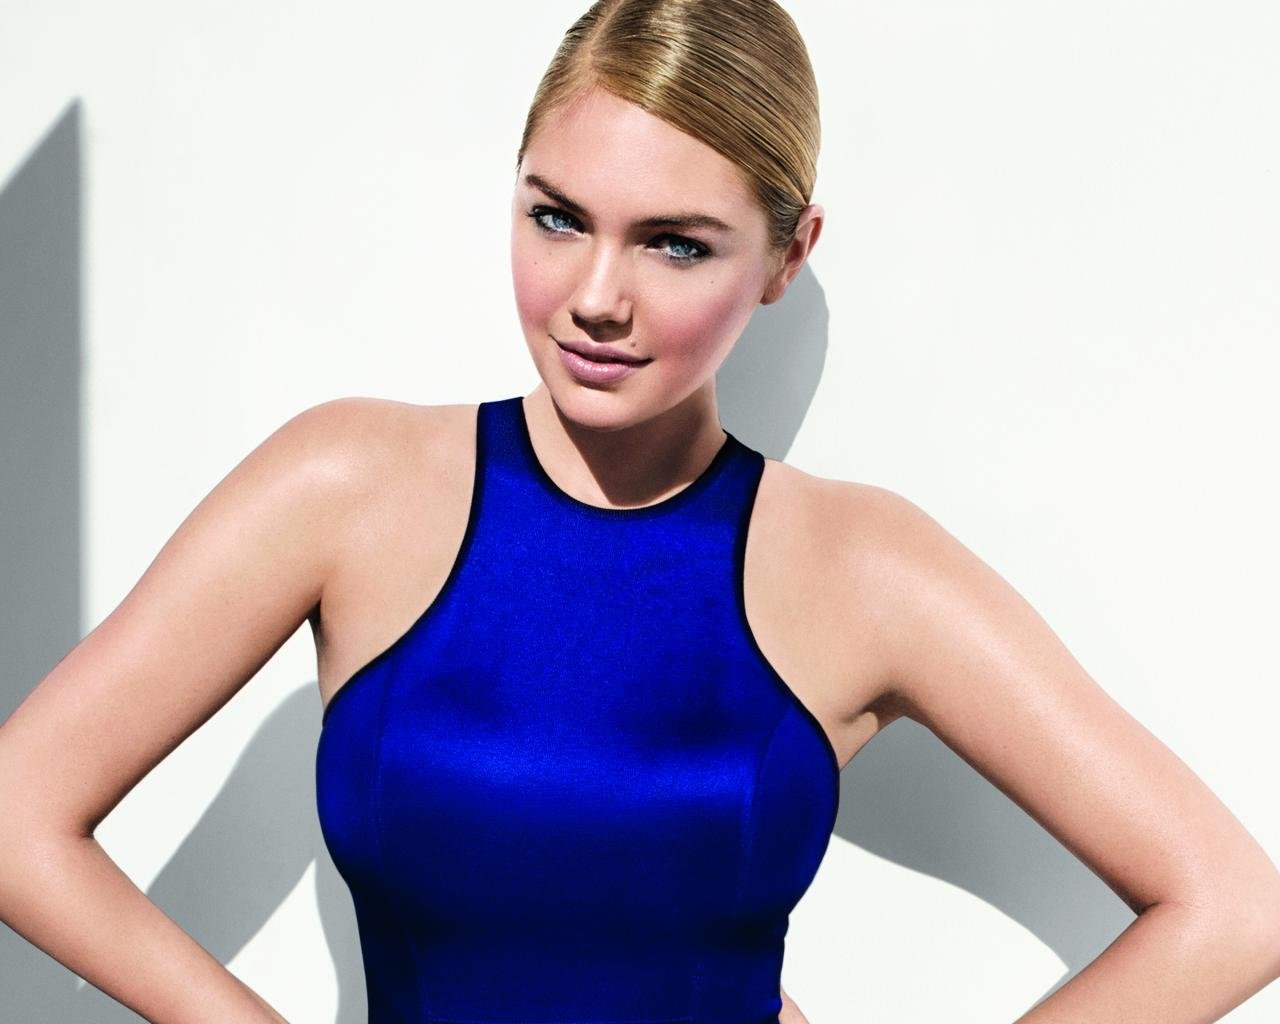 High resolution Kate Upton hd 1280x1024 background ID:122713 for PC